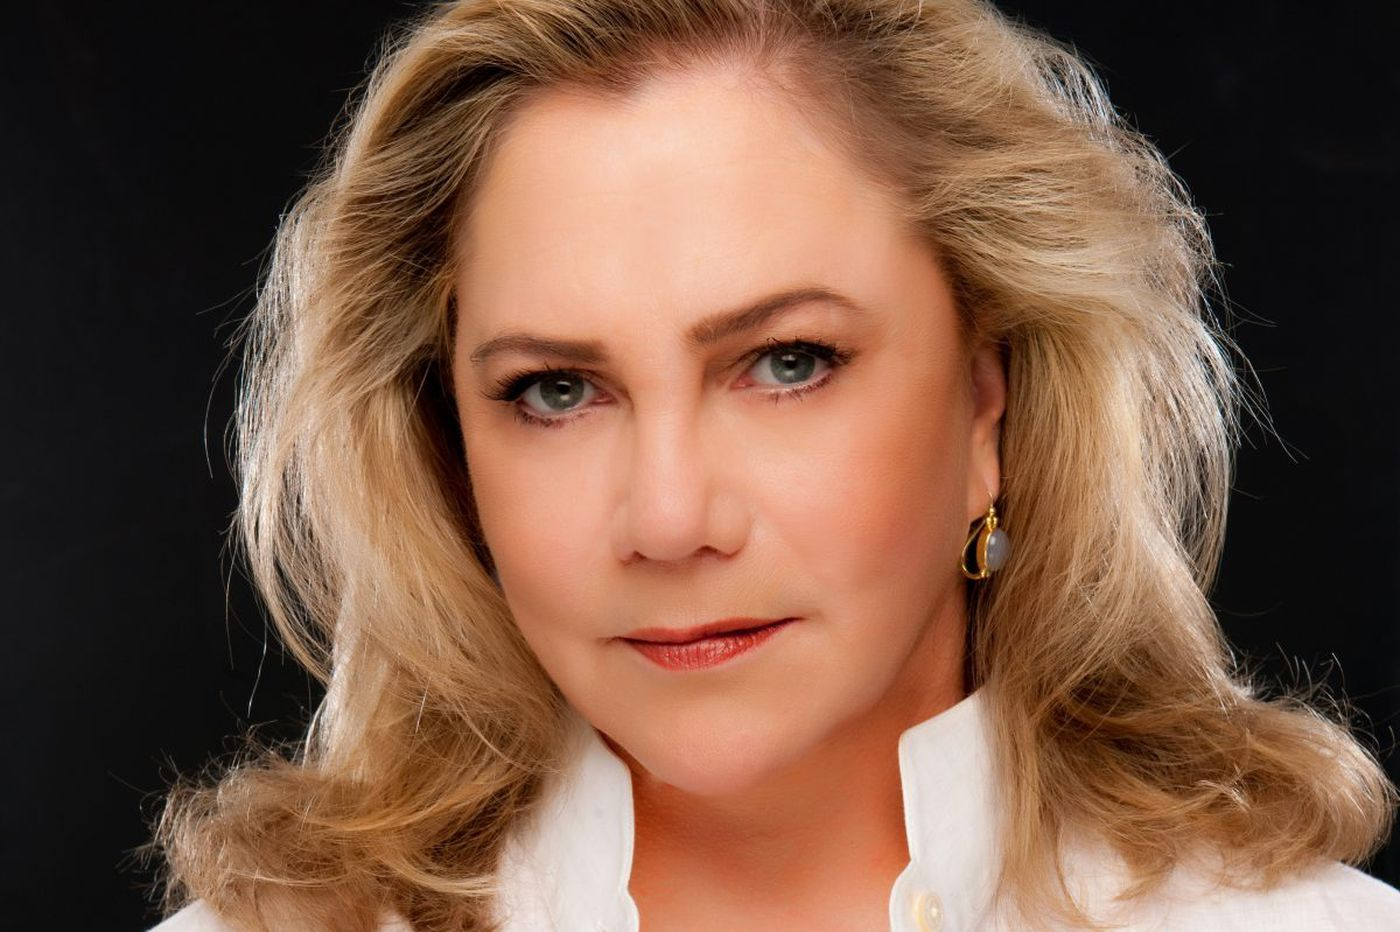 Kathleen Turner waited 40 years to sing her heart out, but she'll give it a whirl Monday in Philly